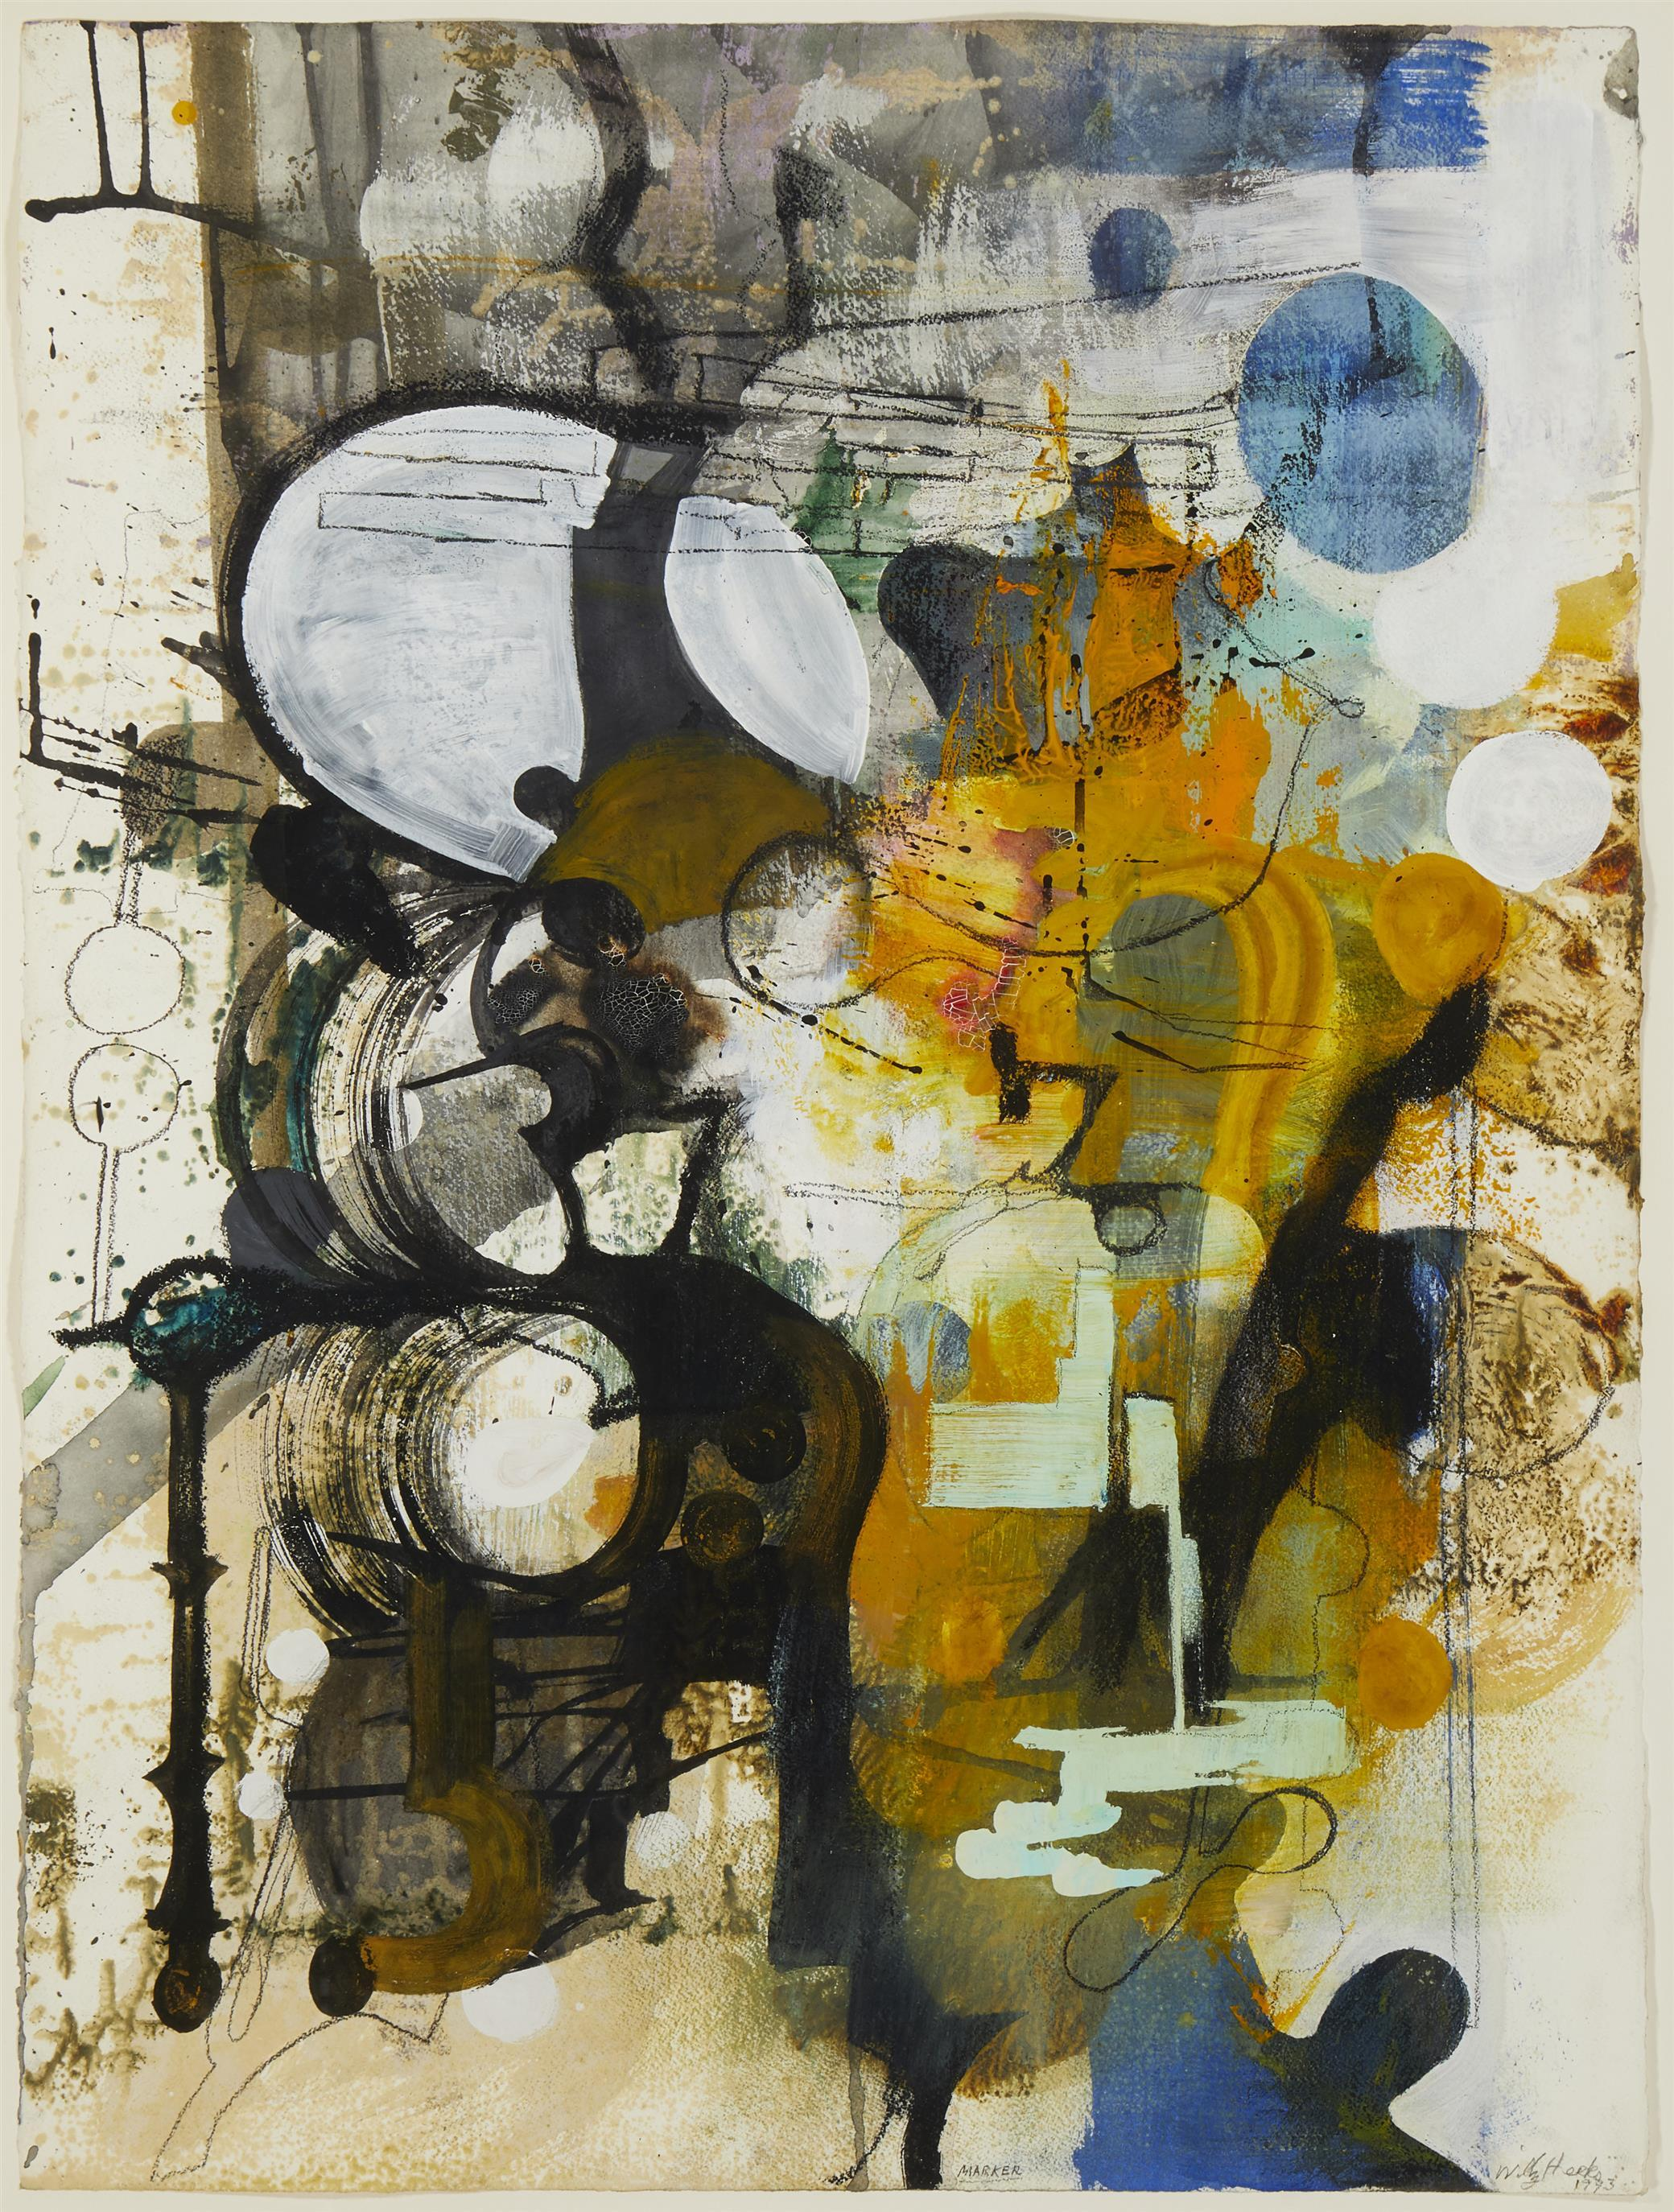 """Willy Heeks, (b. 1951, American), """"Marker,"""" 1993, Oil and acrylic on paper under glass, 29.5"""" H x 22.25"""" W"""